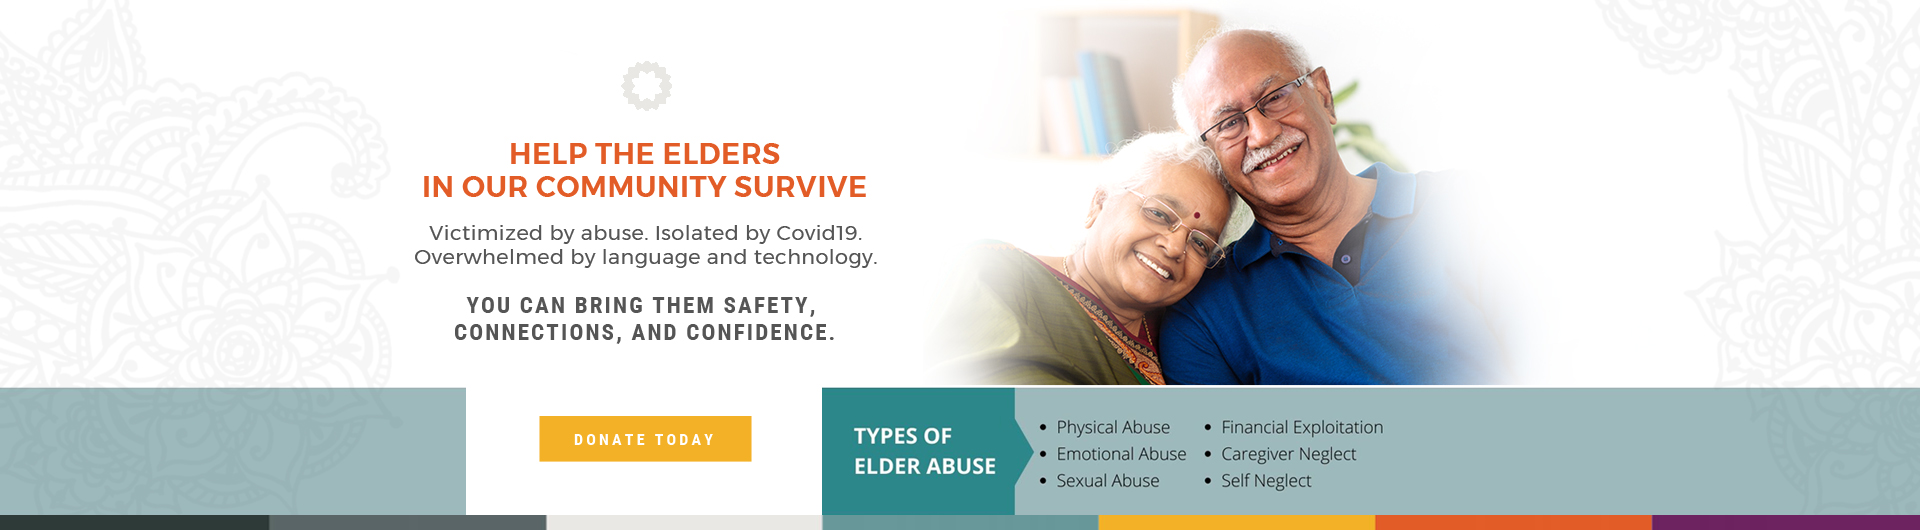 Support Elder Abuse Victims